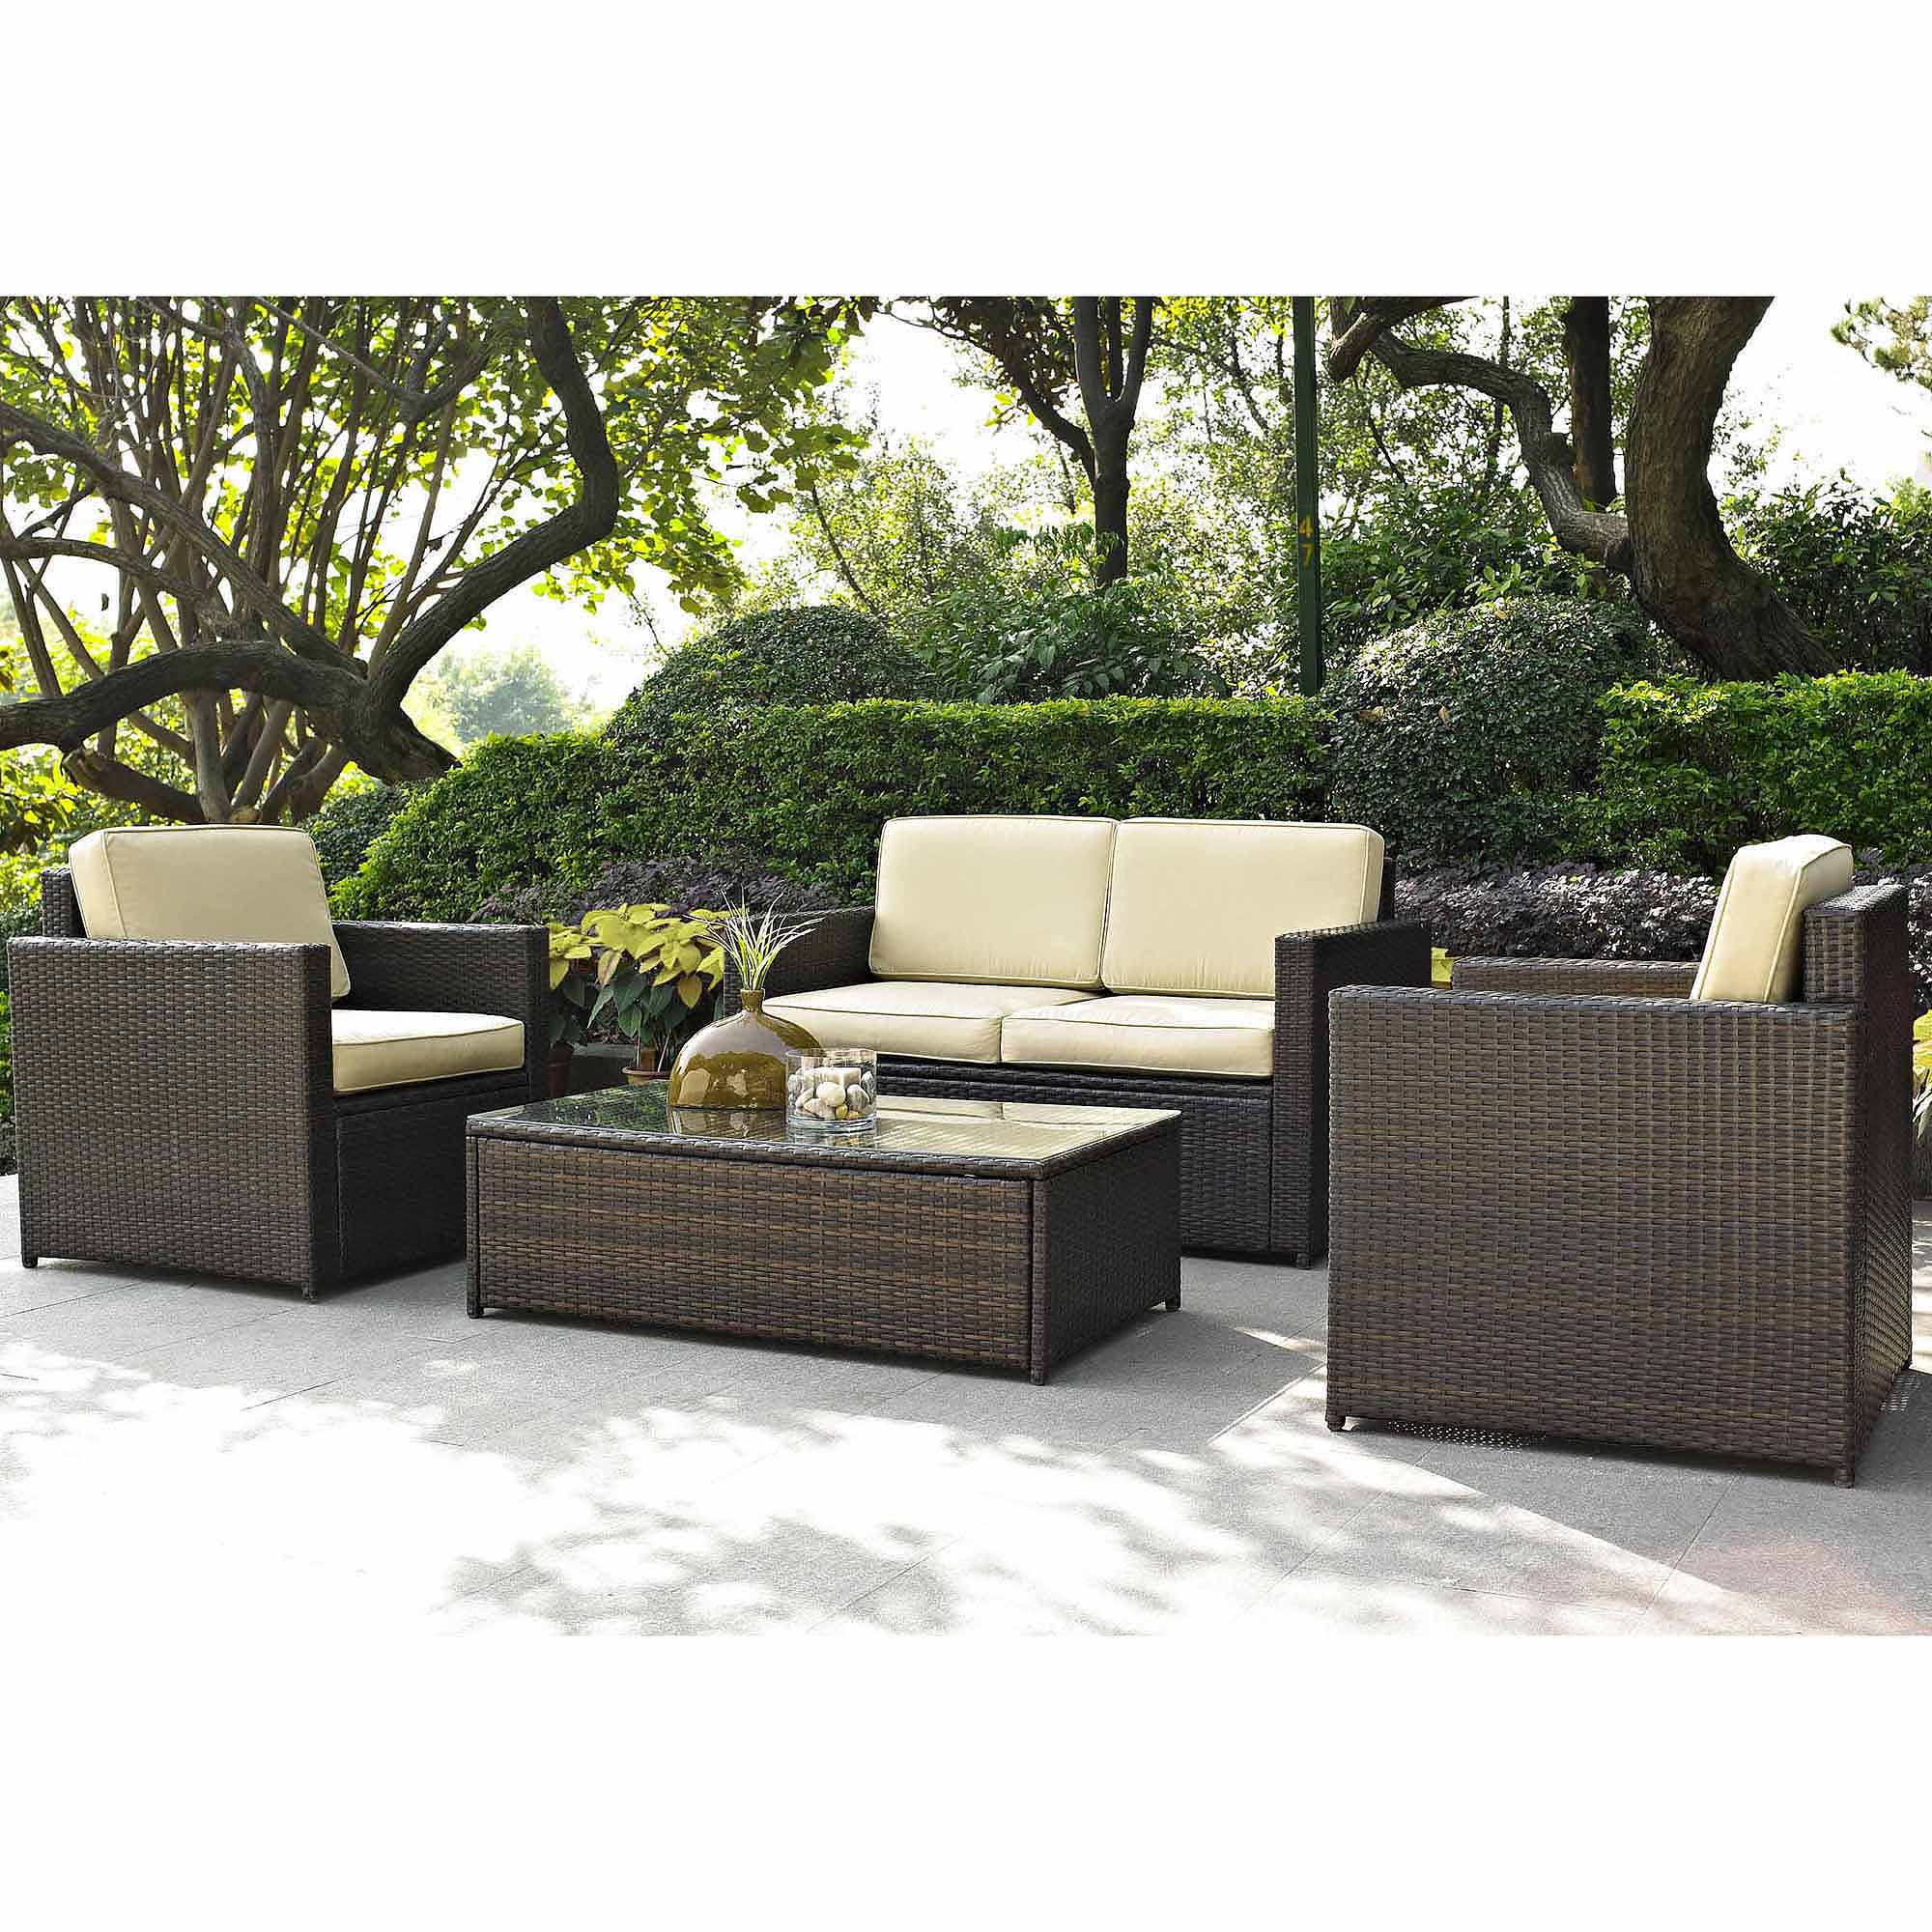 wicker patio furniture best choice products outdoor garden patio 4pc cushioned seat black wicker  sofa furniture set - walmart.com GJQXAYP